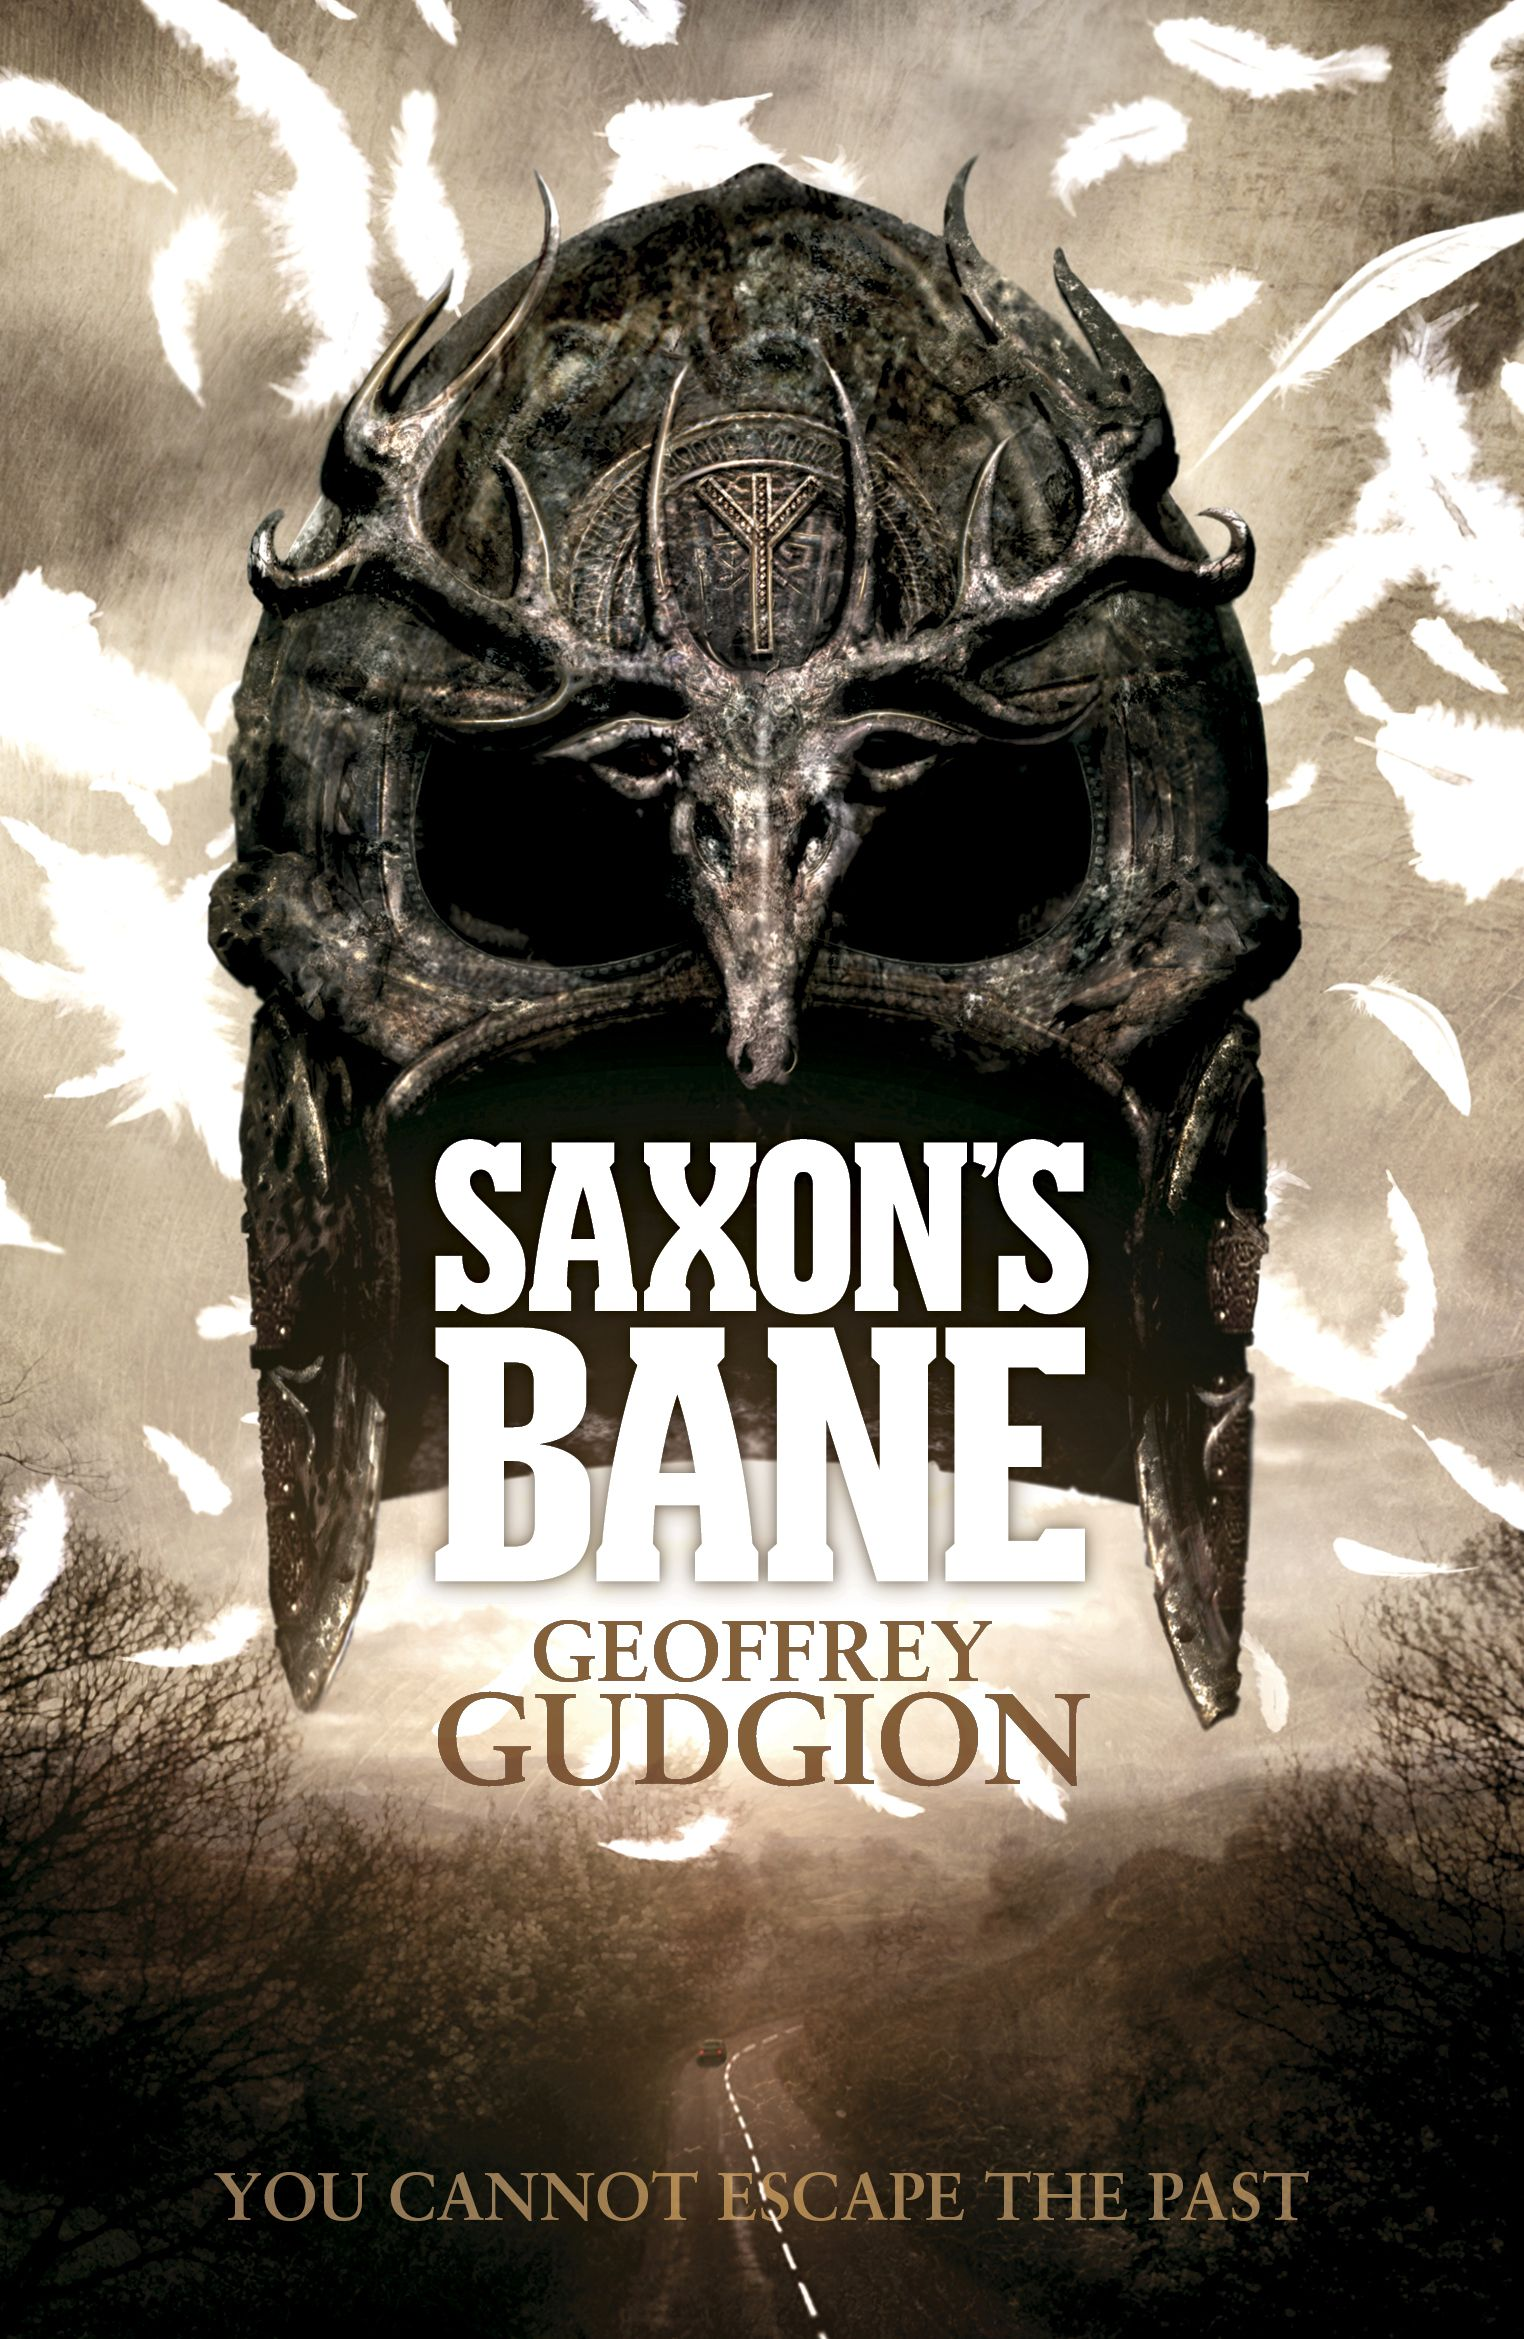 Saxon's Bane will be released by Solaris Books on 27th August in the USA and Canada, and 12th September in the UK